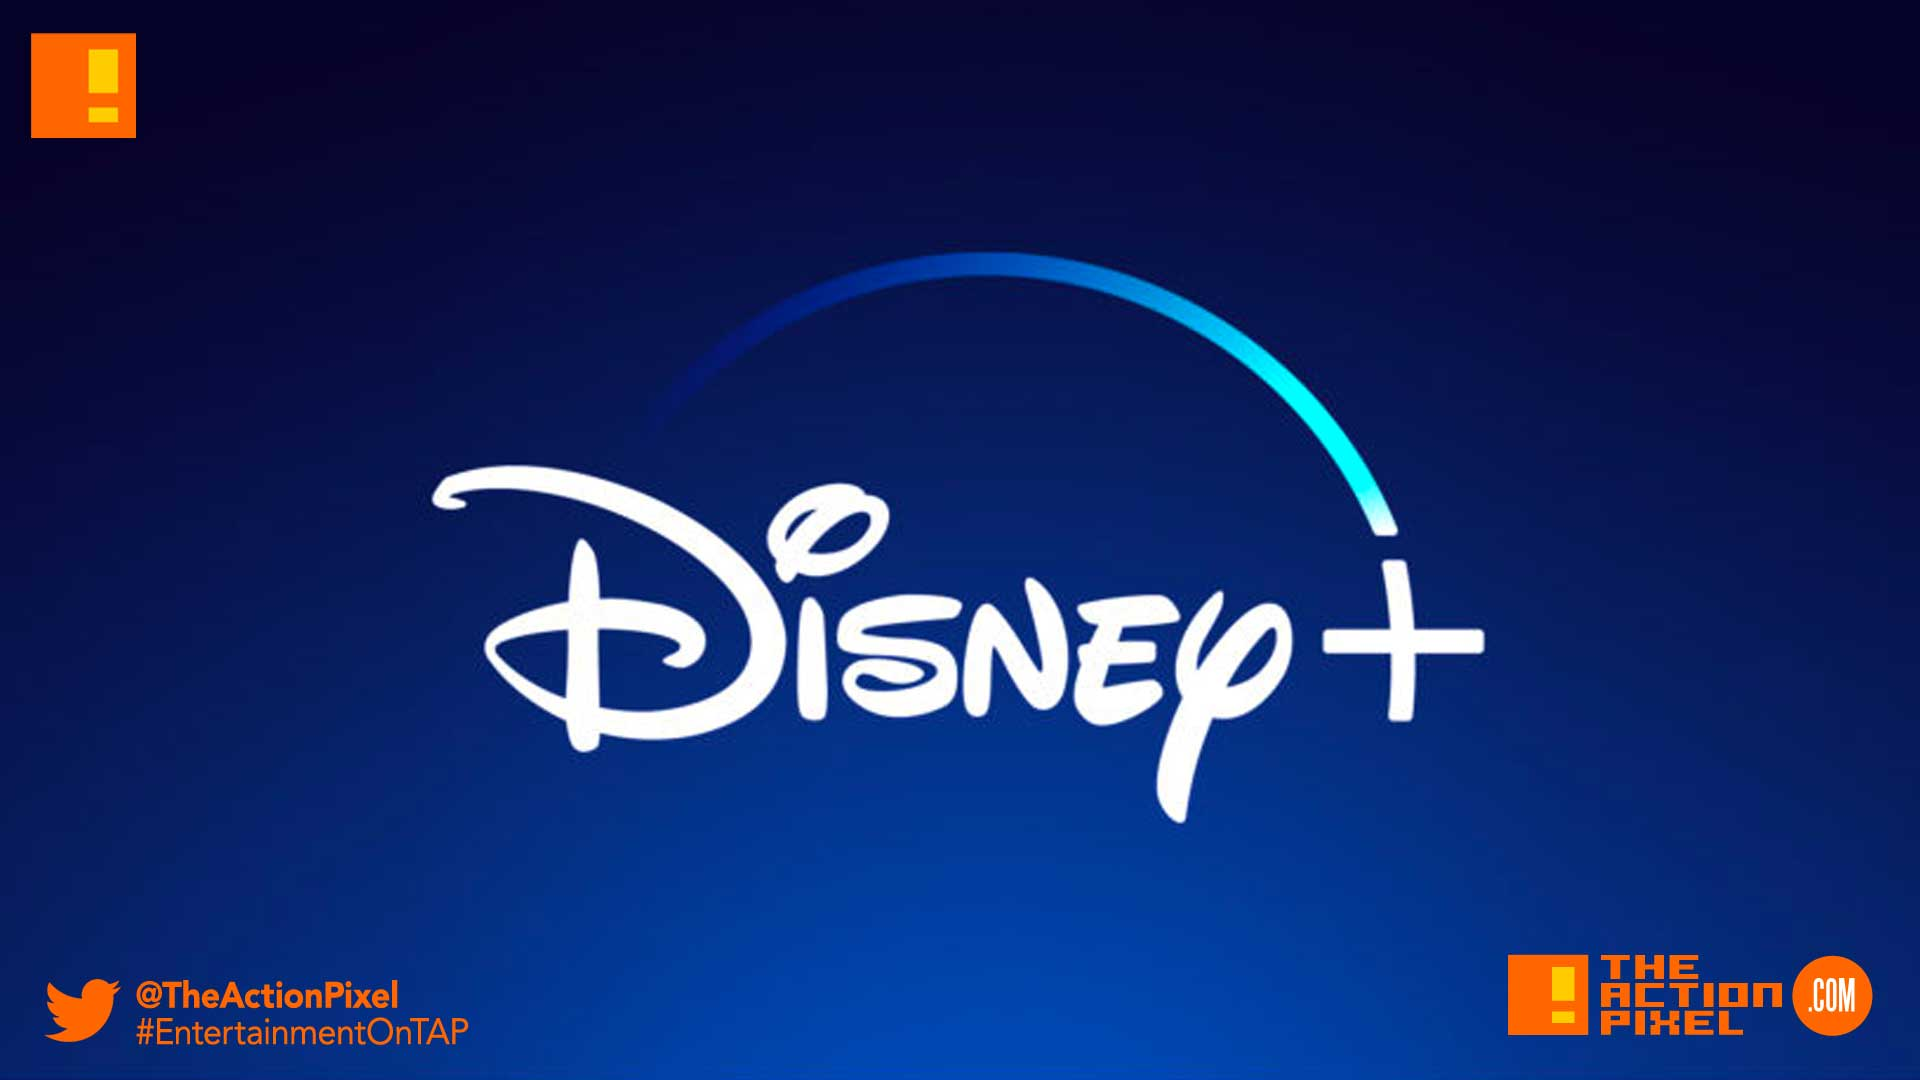 disney+, disney, entertainment on tap, bob iger, the action pixel,